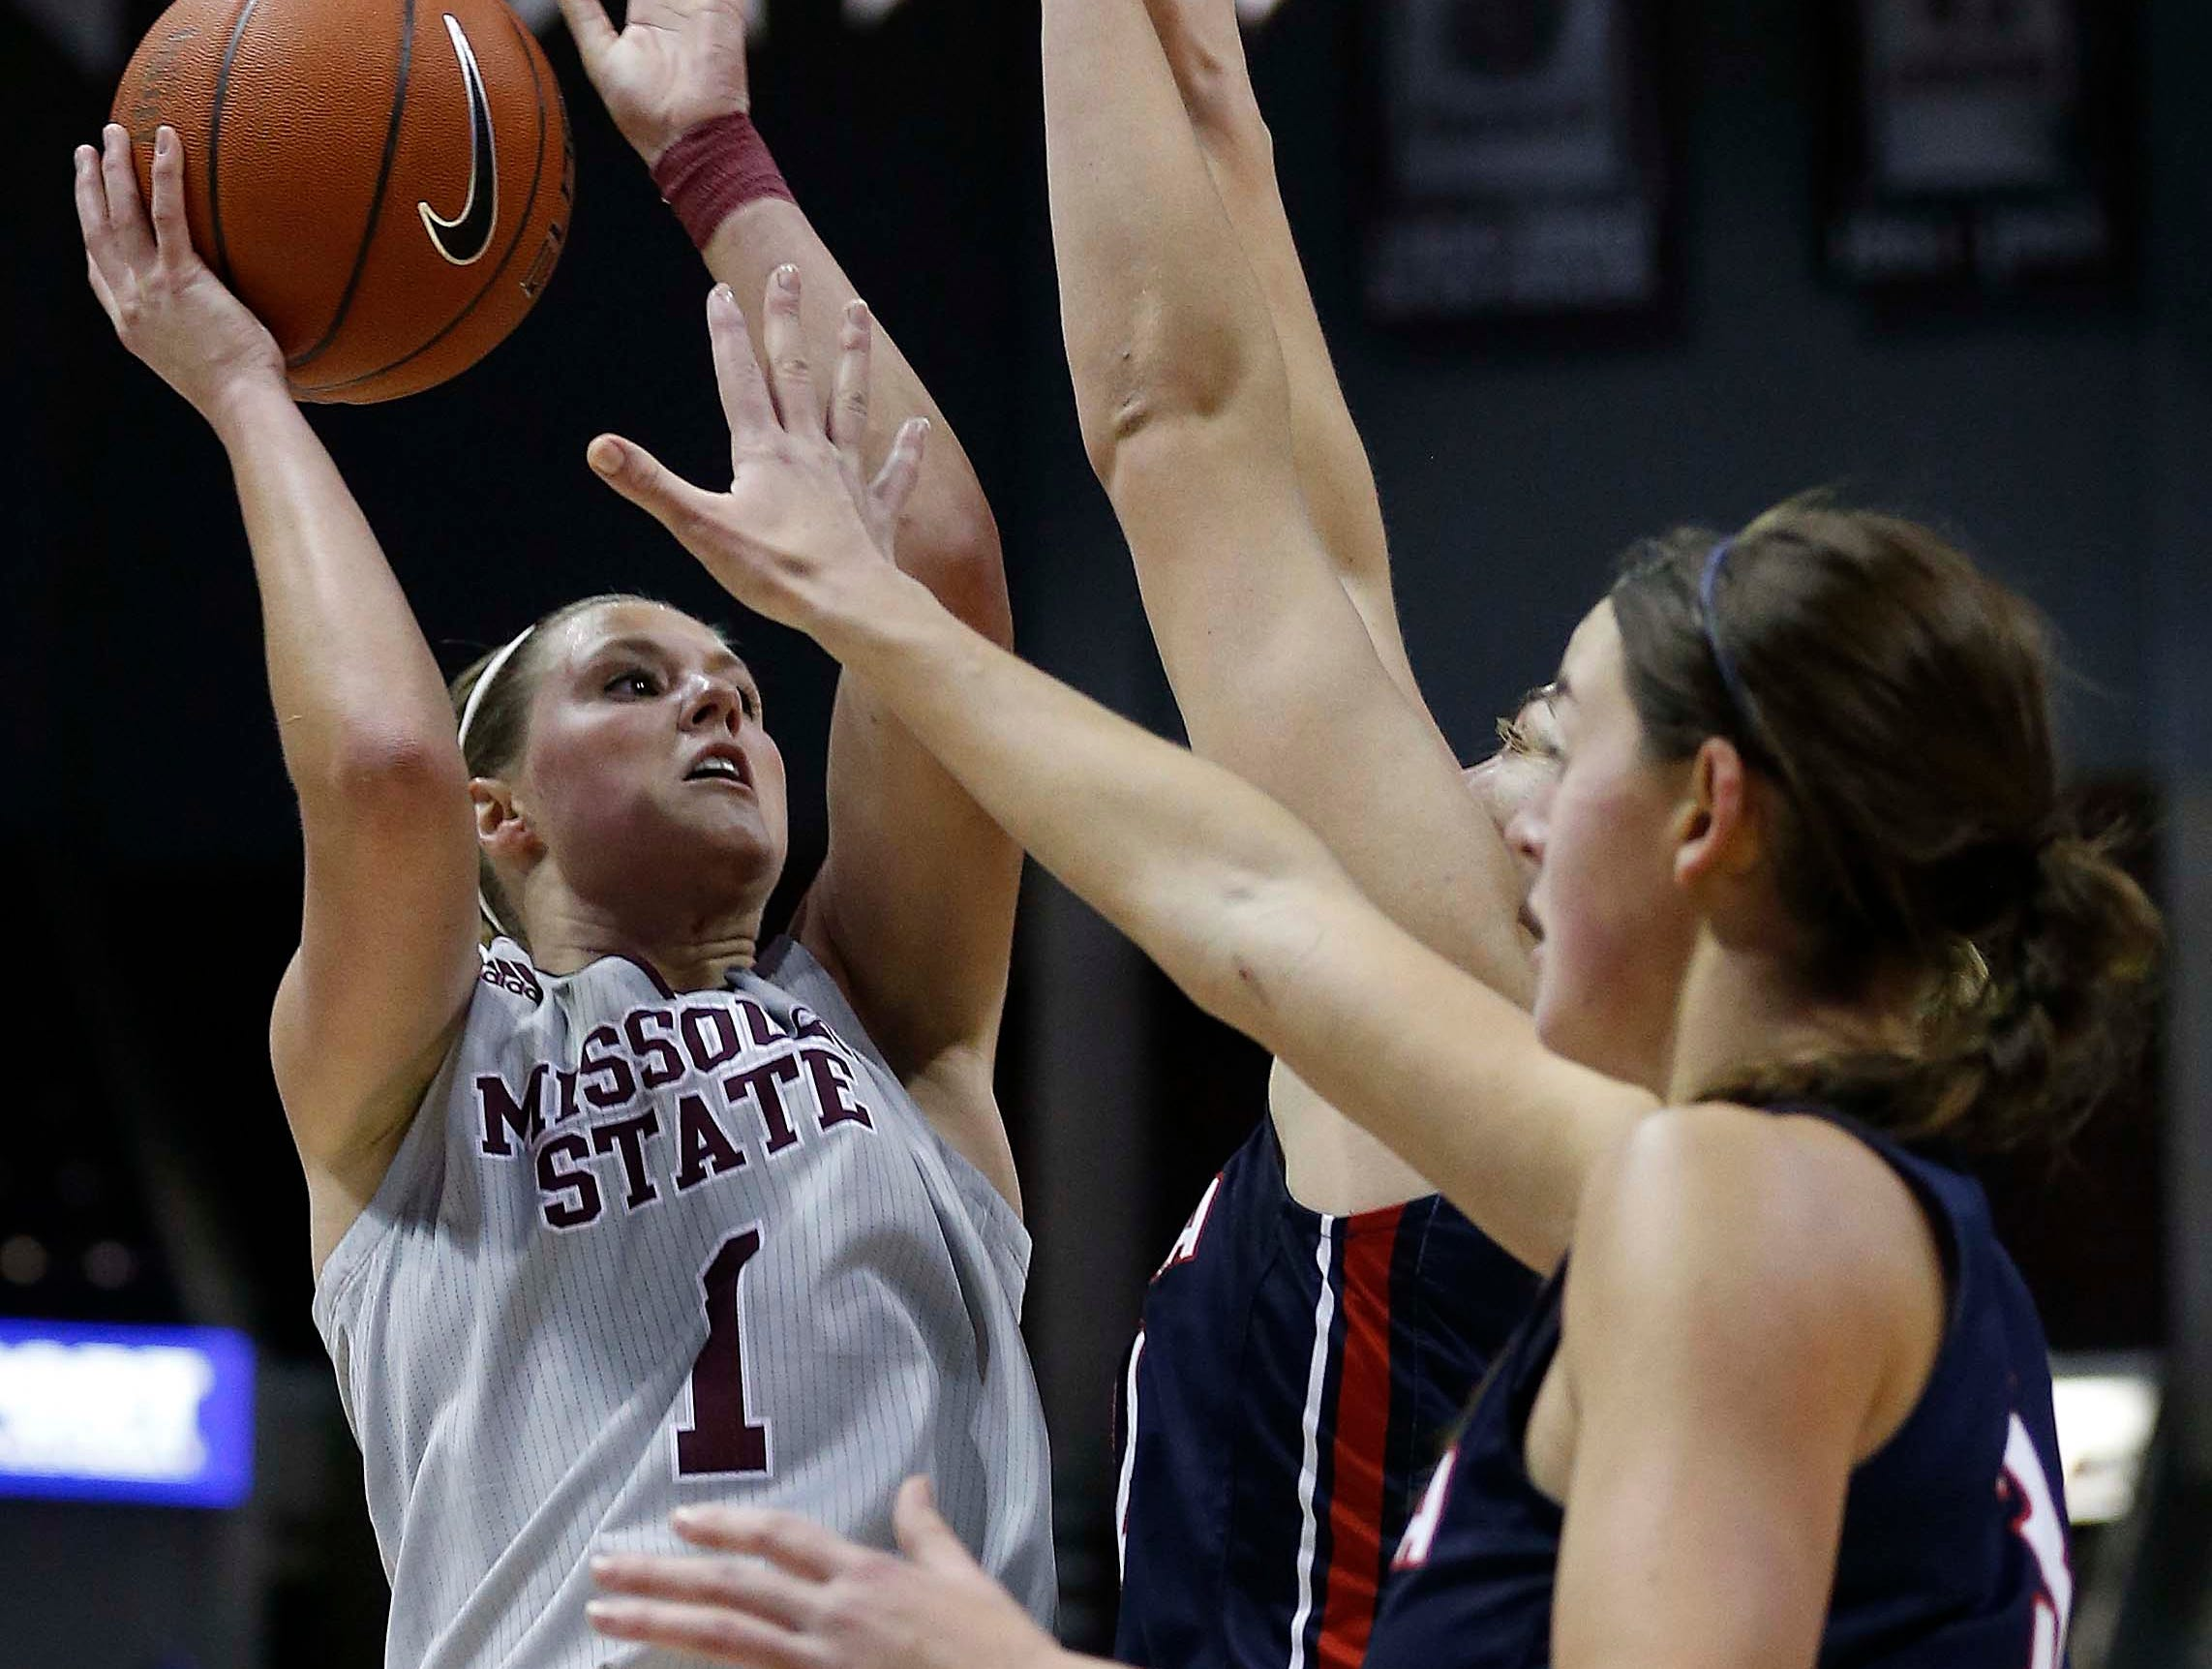 The MSU Lady Bears' Danielle Gitzen shoots against Gonzaga at JQH Arena in Springfield on December 16, 2018.